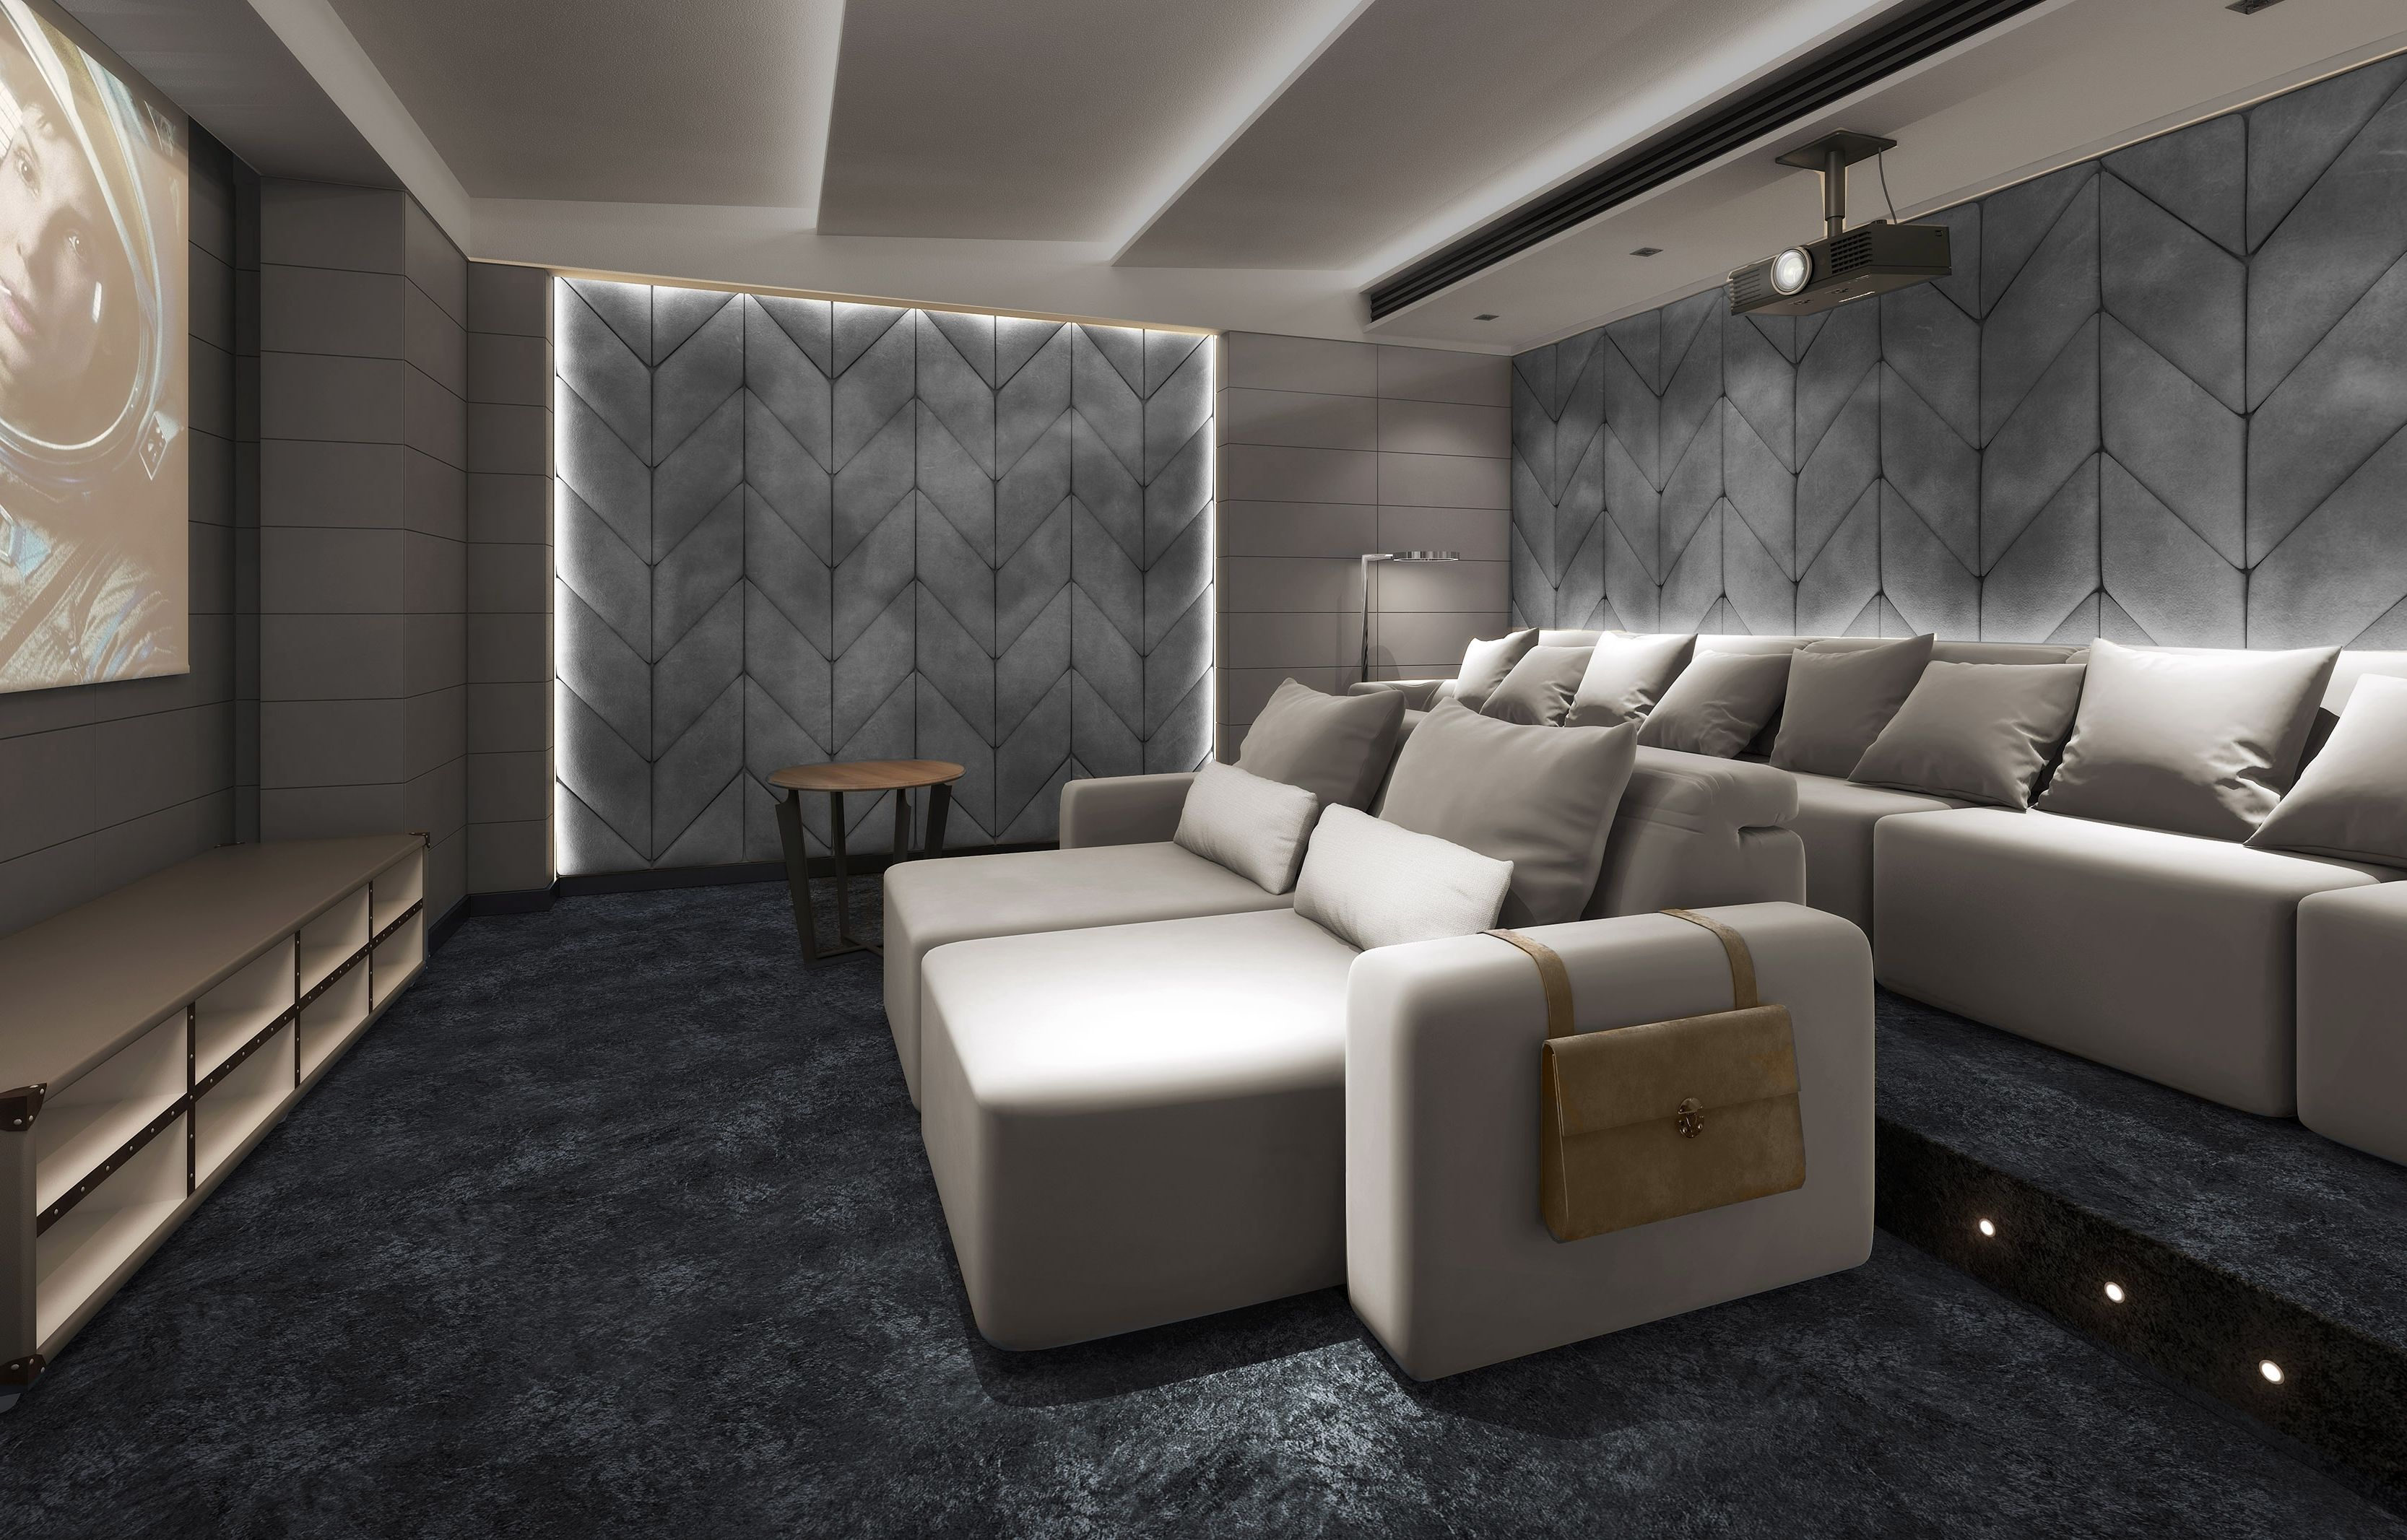 Luxury home cinema room pictures.